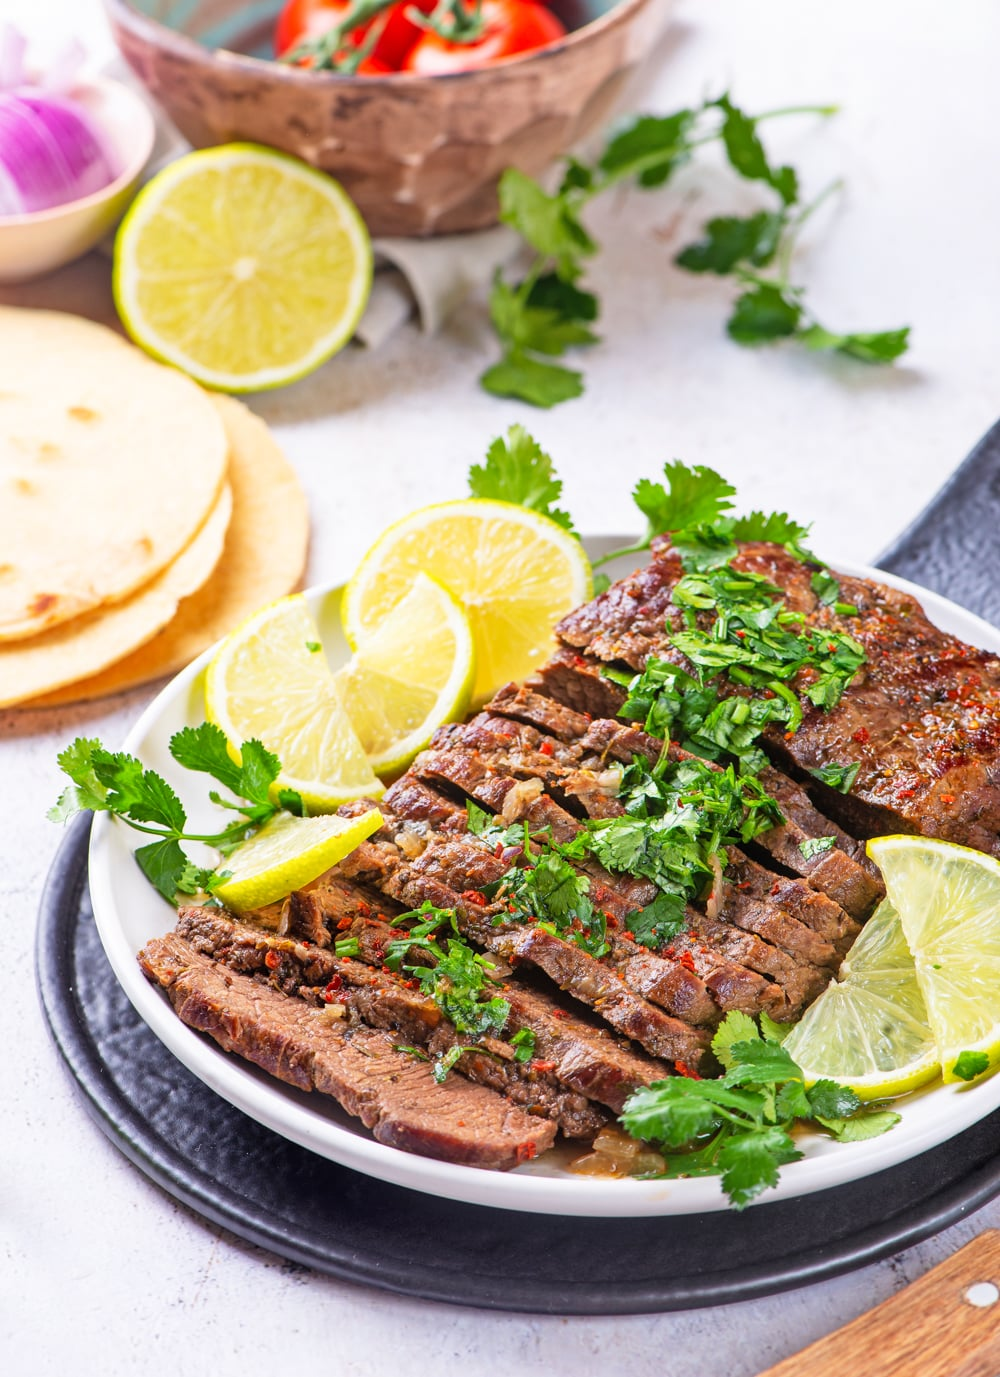 Cooked Flank steak cut up on a plate, and covered in chimichurri sauce.